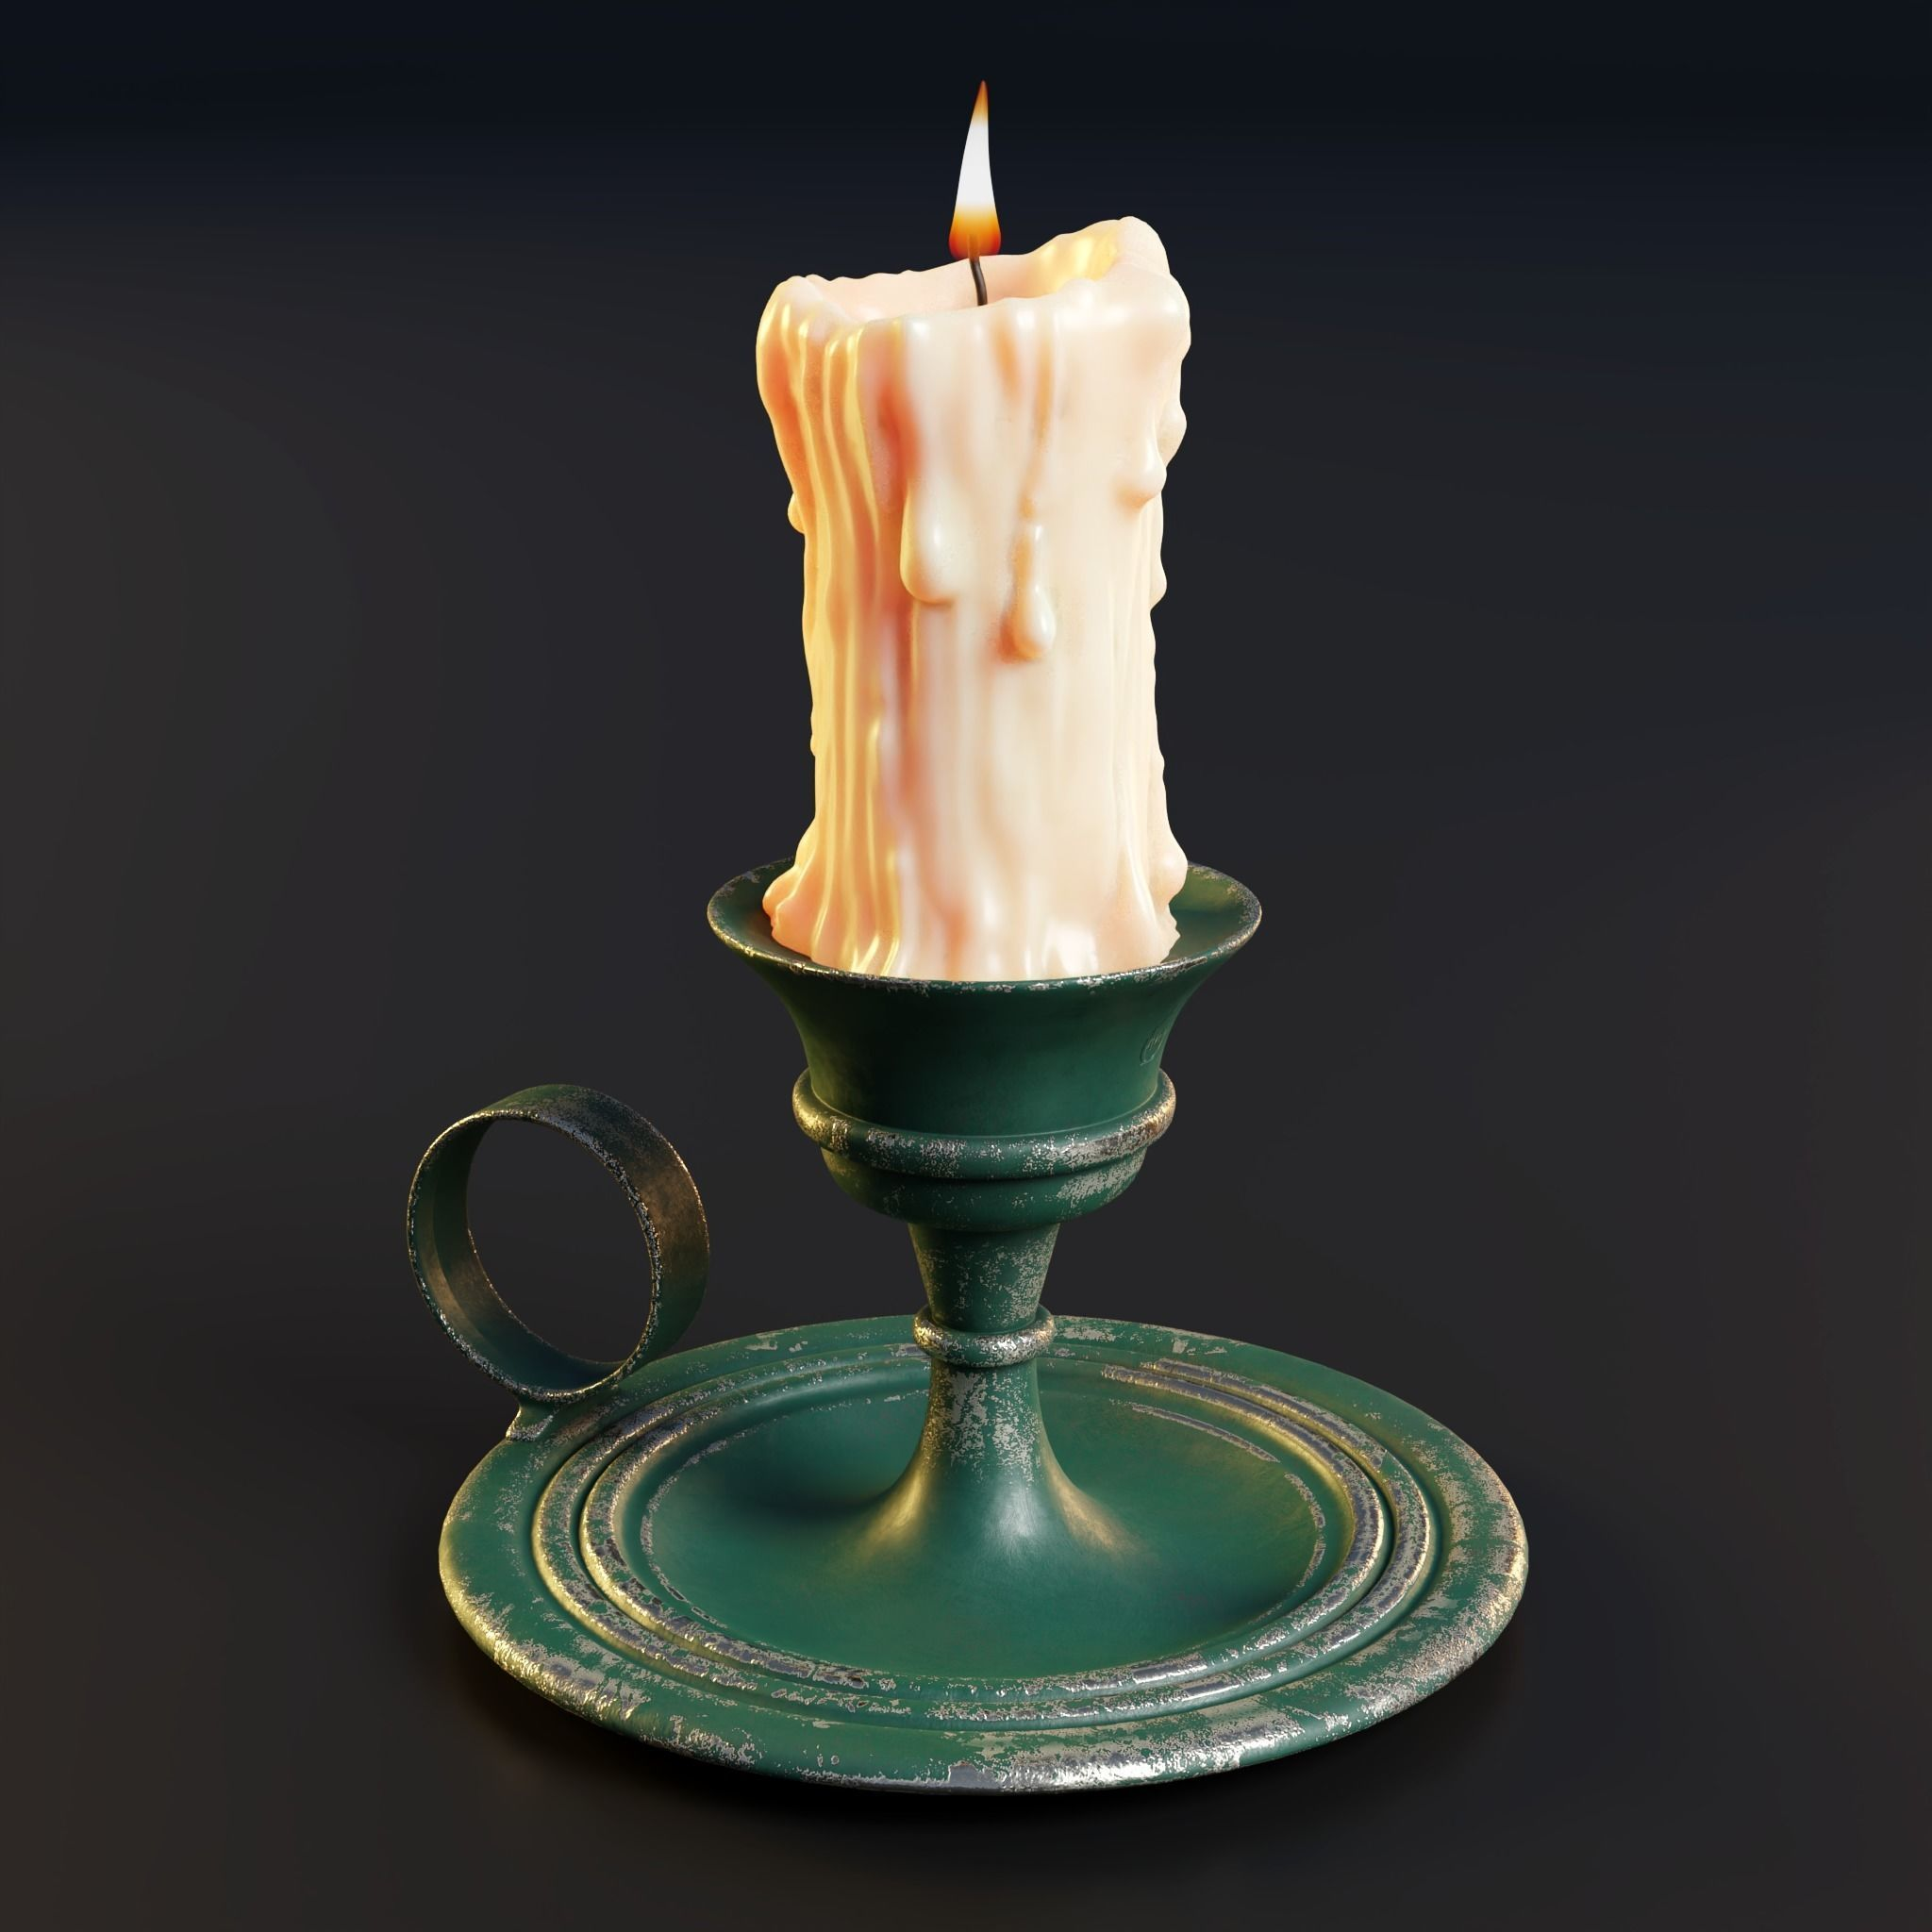 Melted candle and rustic candle holder